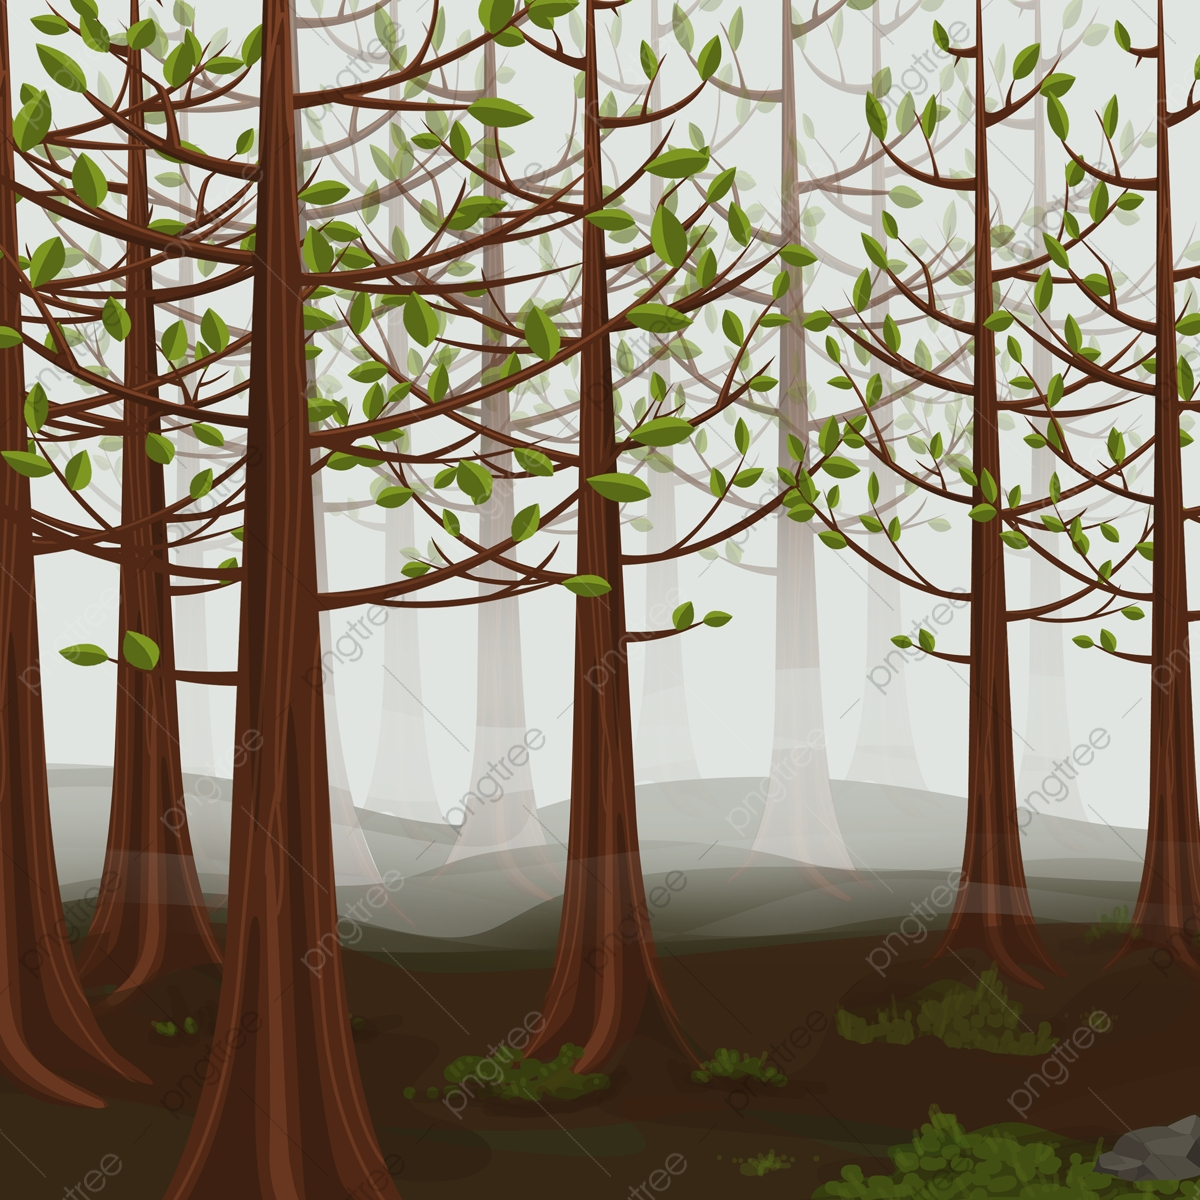 Deep forest vector clip art. Forest Clipart Png Images Vector And Psd Files Free Download On Pngtree